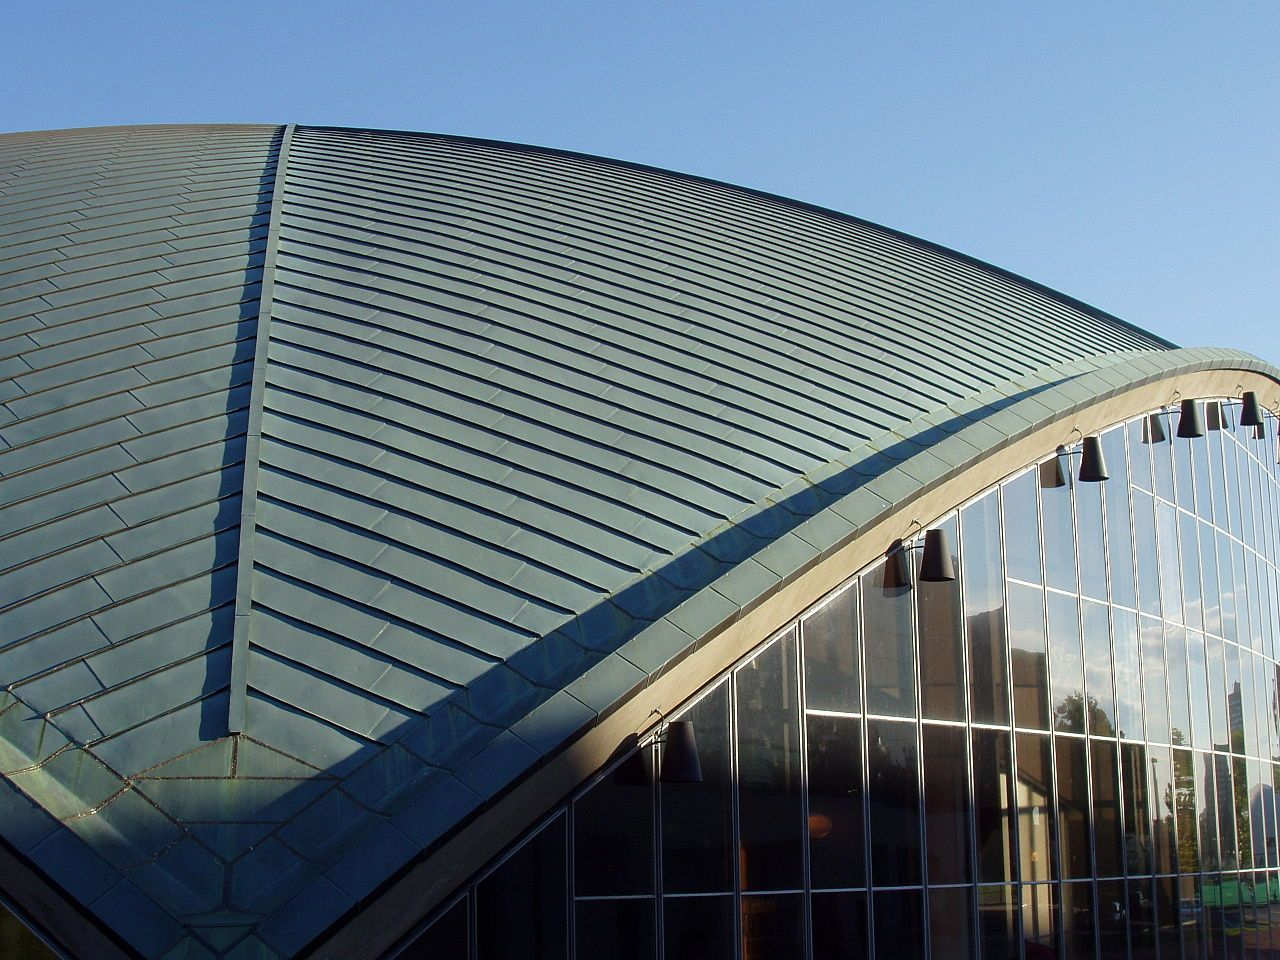 Copper Clad Roof Kresge Auditorium Mit List Of Commercially Available Roofing Material Wikipedia The Free Encyclopedia